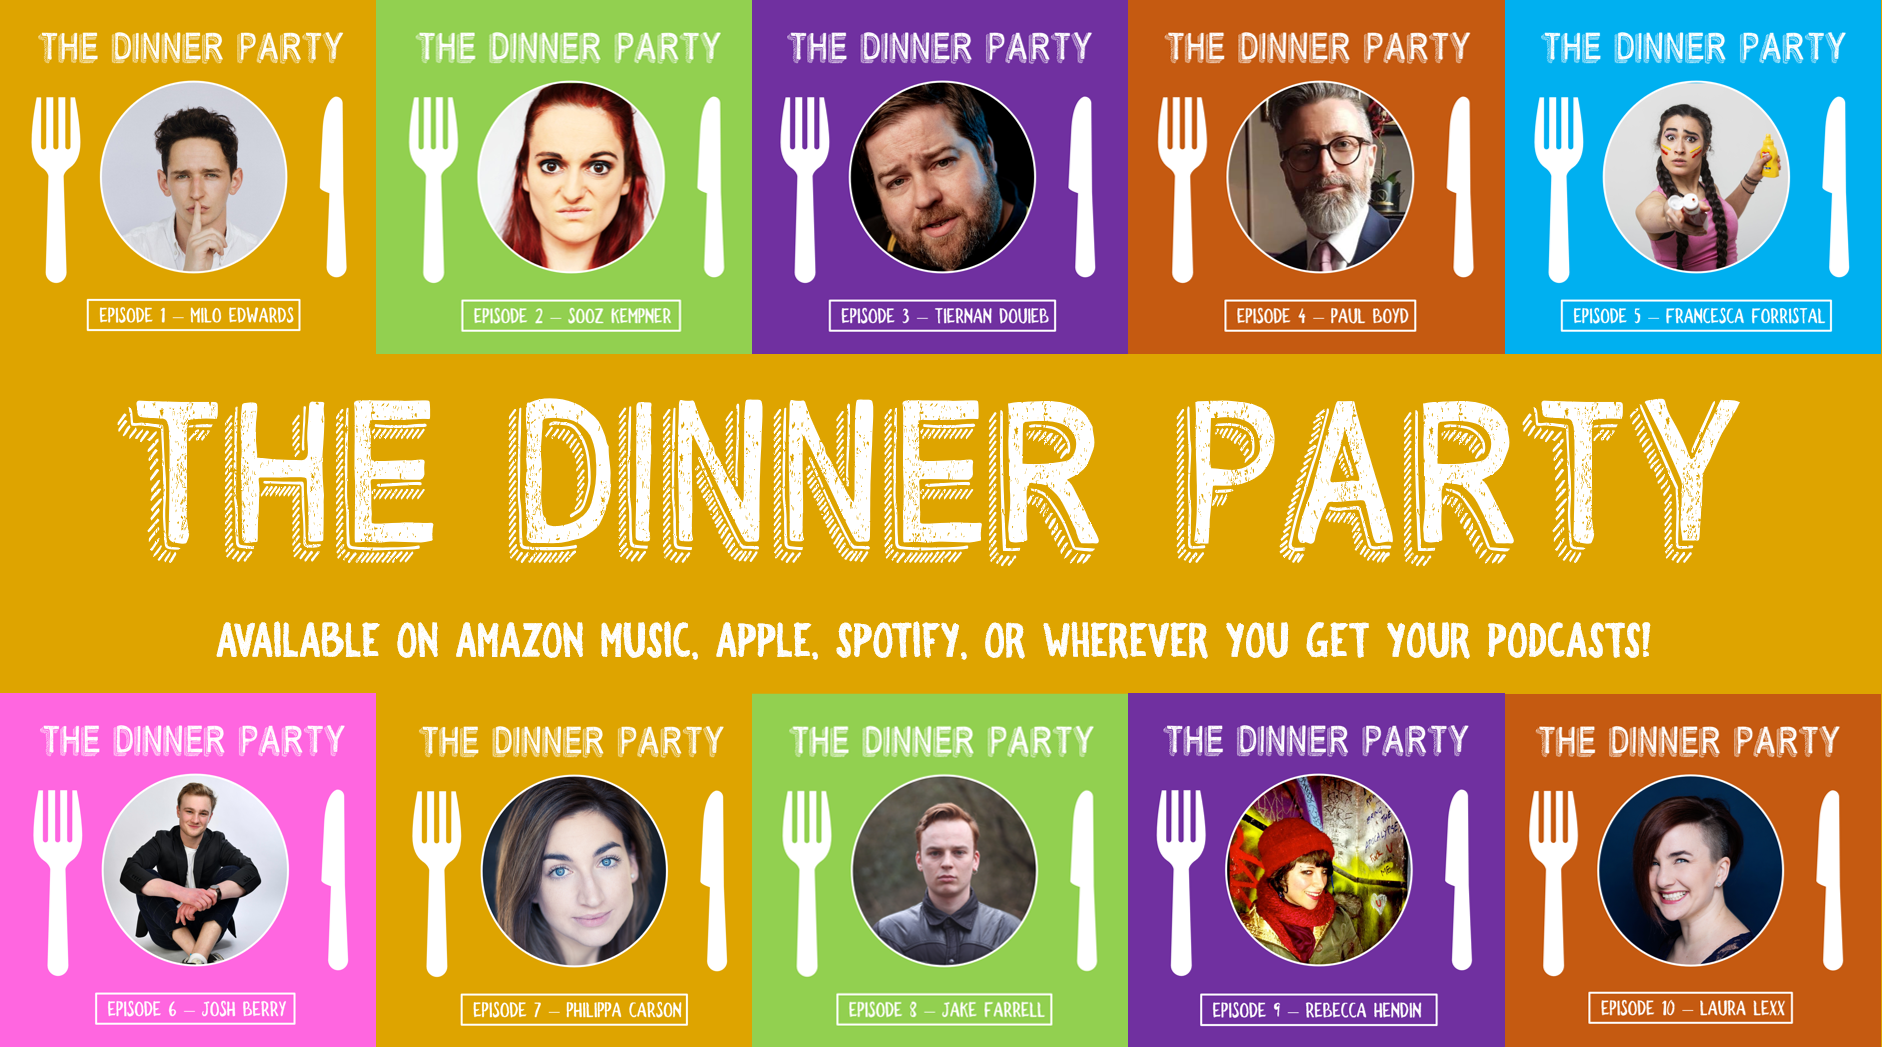 In each episode of The Dinner Party, host Conor McReynolds asks guests to describe their dream dinner parties - the venue, the menu, and the guest list!  Who are they inviting?  Why?  And what would they talk about?  These conversations are always fascinating, and more often than not, very funny!